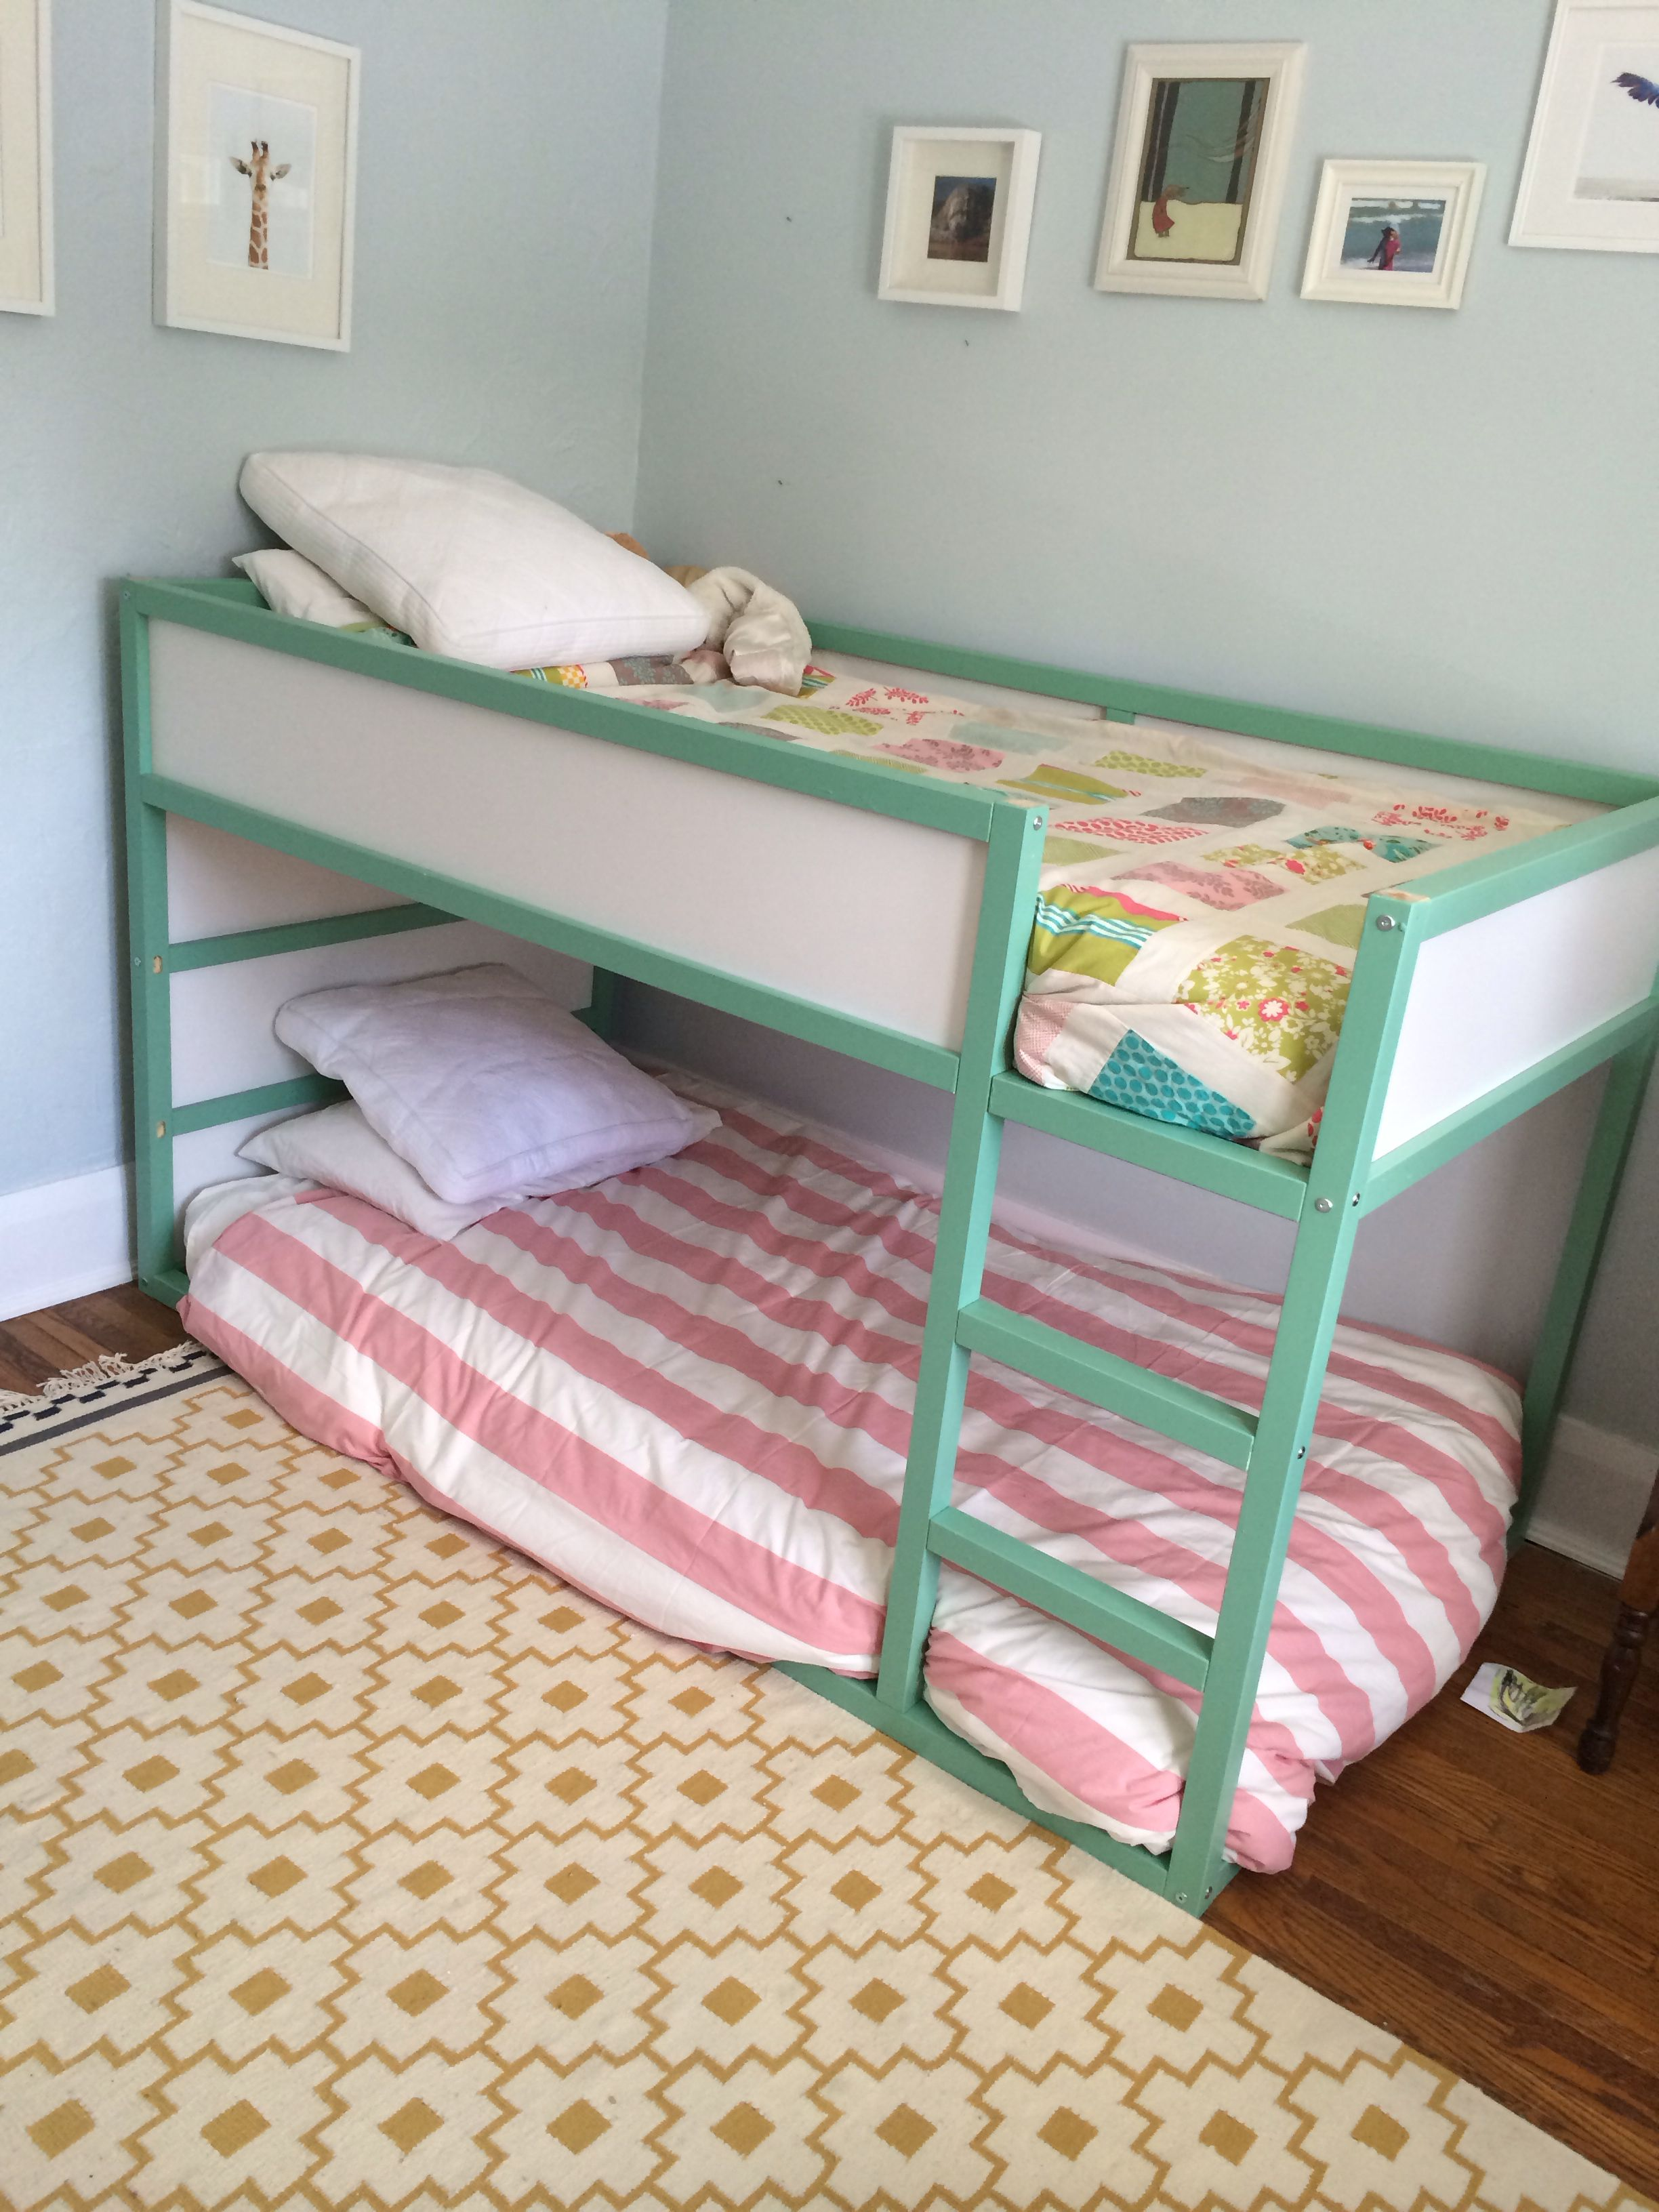 Make your own bed risers - 20 Ways To Customize The Ikea Kura Loft Bed Make It Your Own